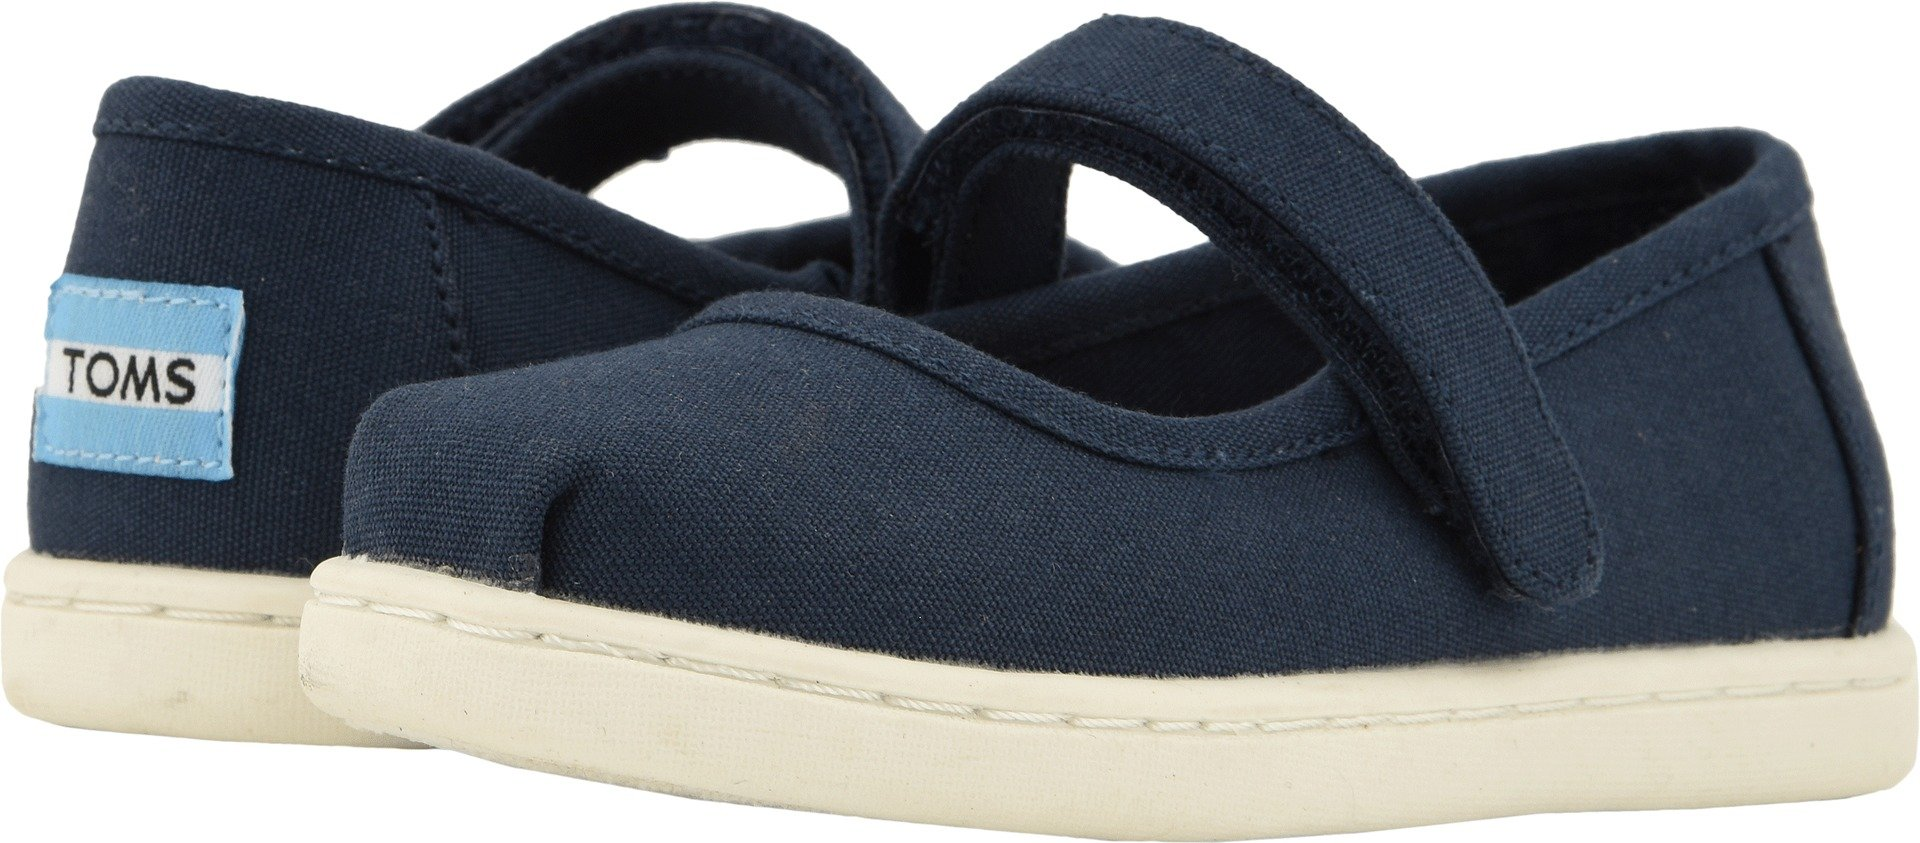 TOMS Kids Baby Girl's Mary Jane (Infant/Toddler/Little Kid) Navy Canvas 10 M US Toddler